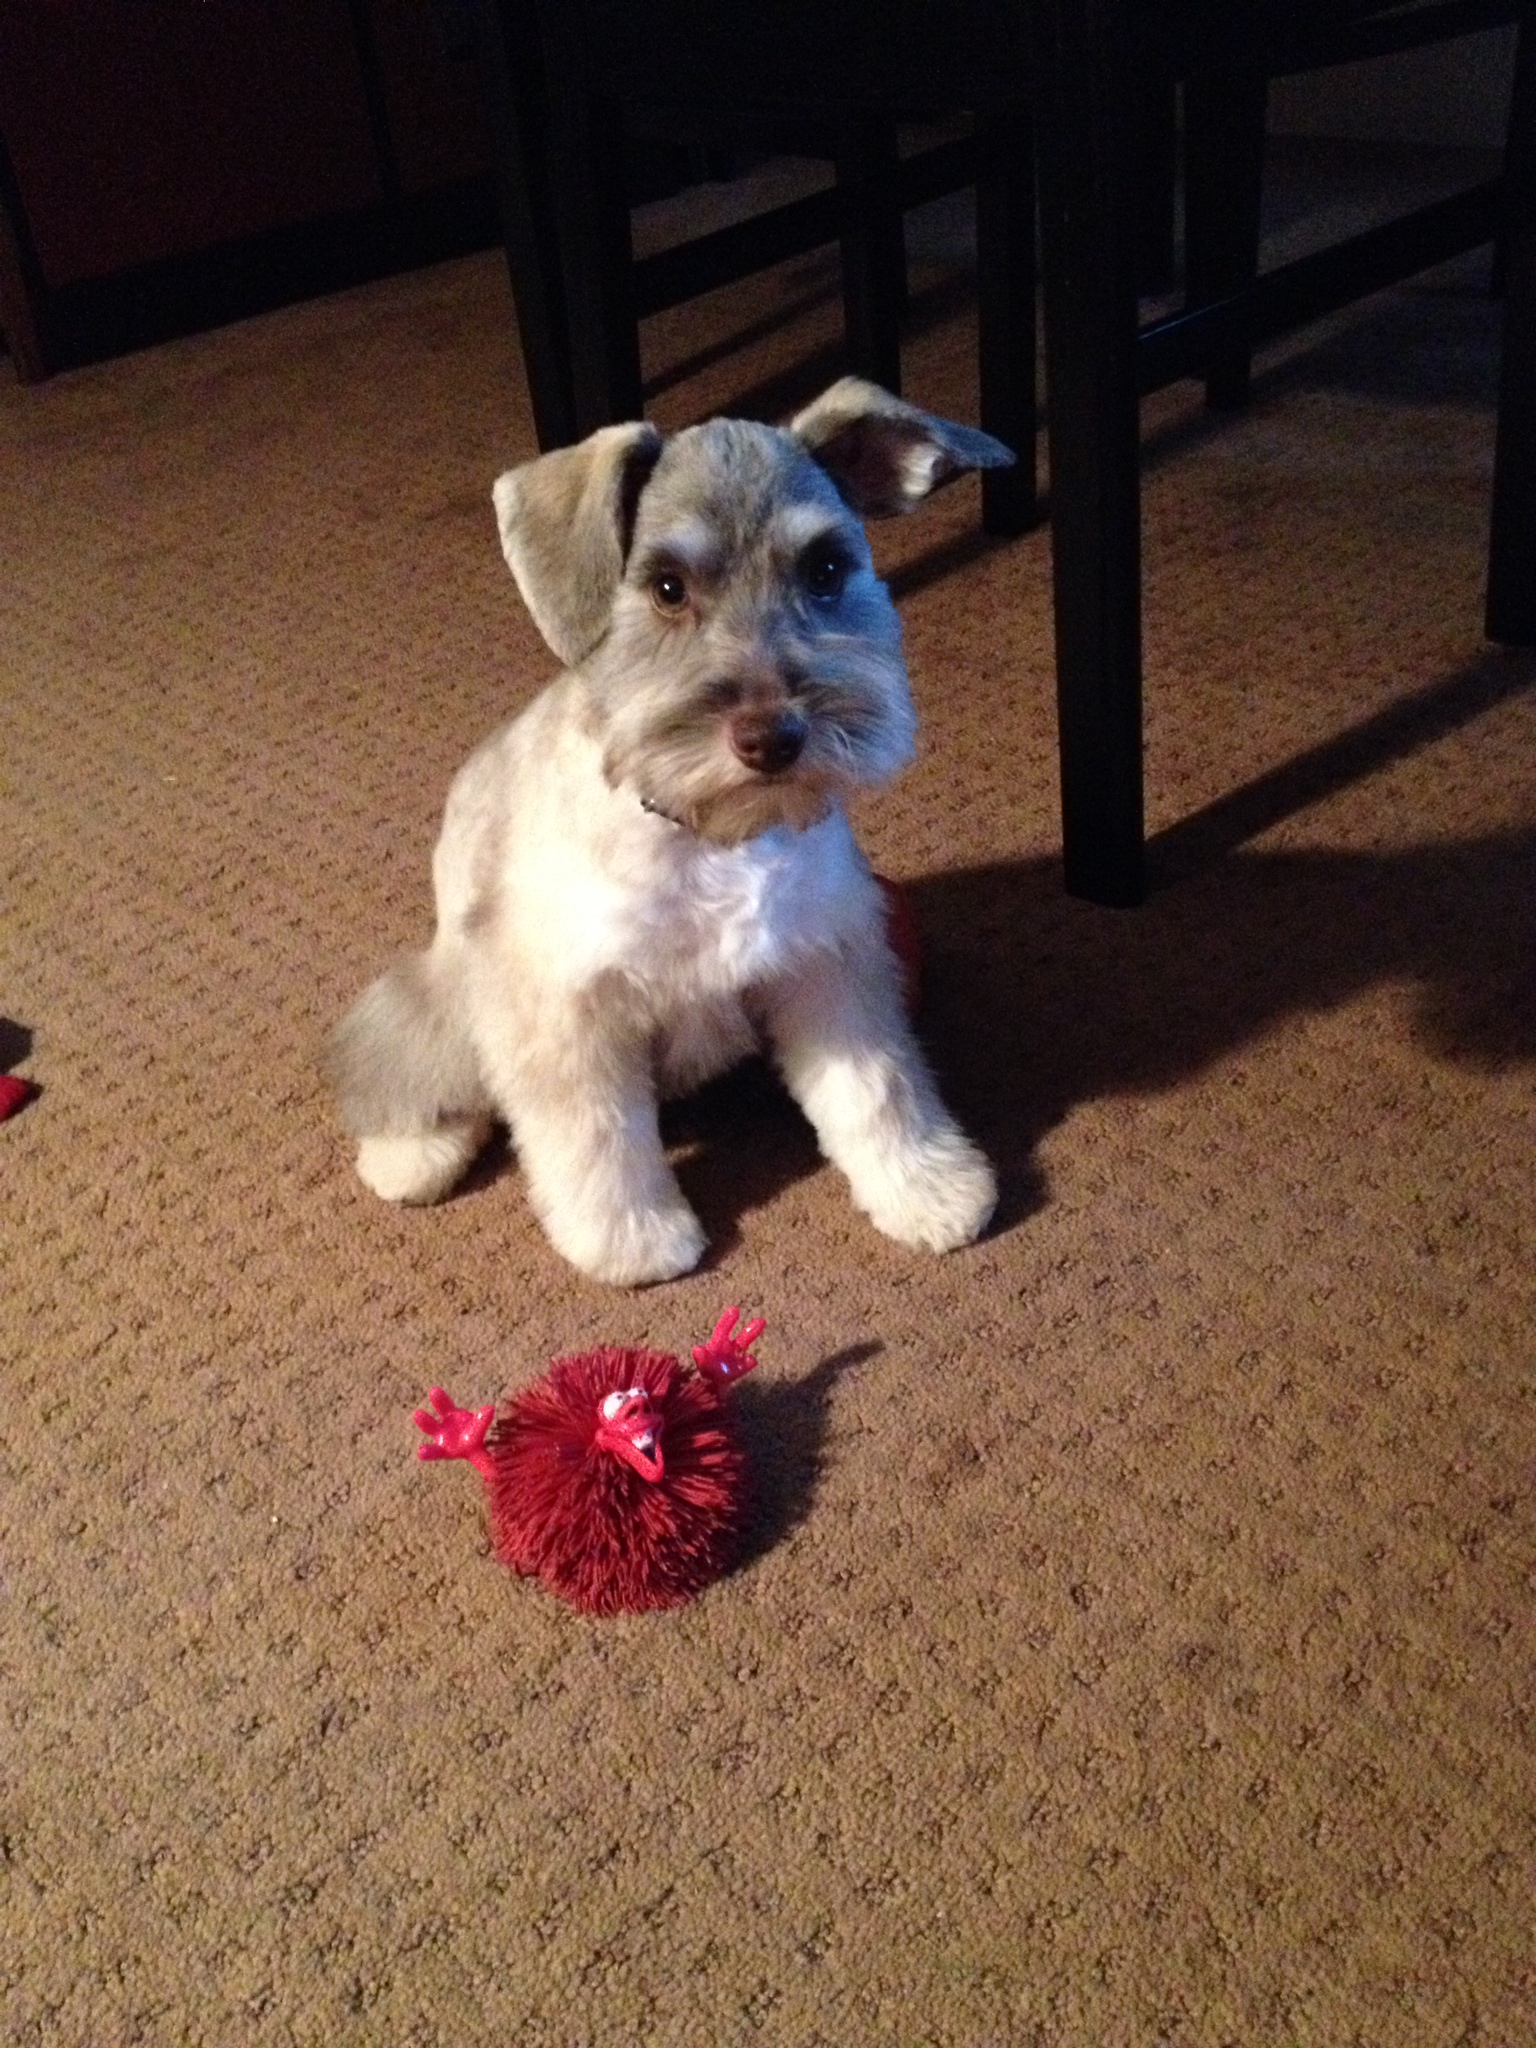 picture-of-puppy-on-carpet